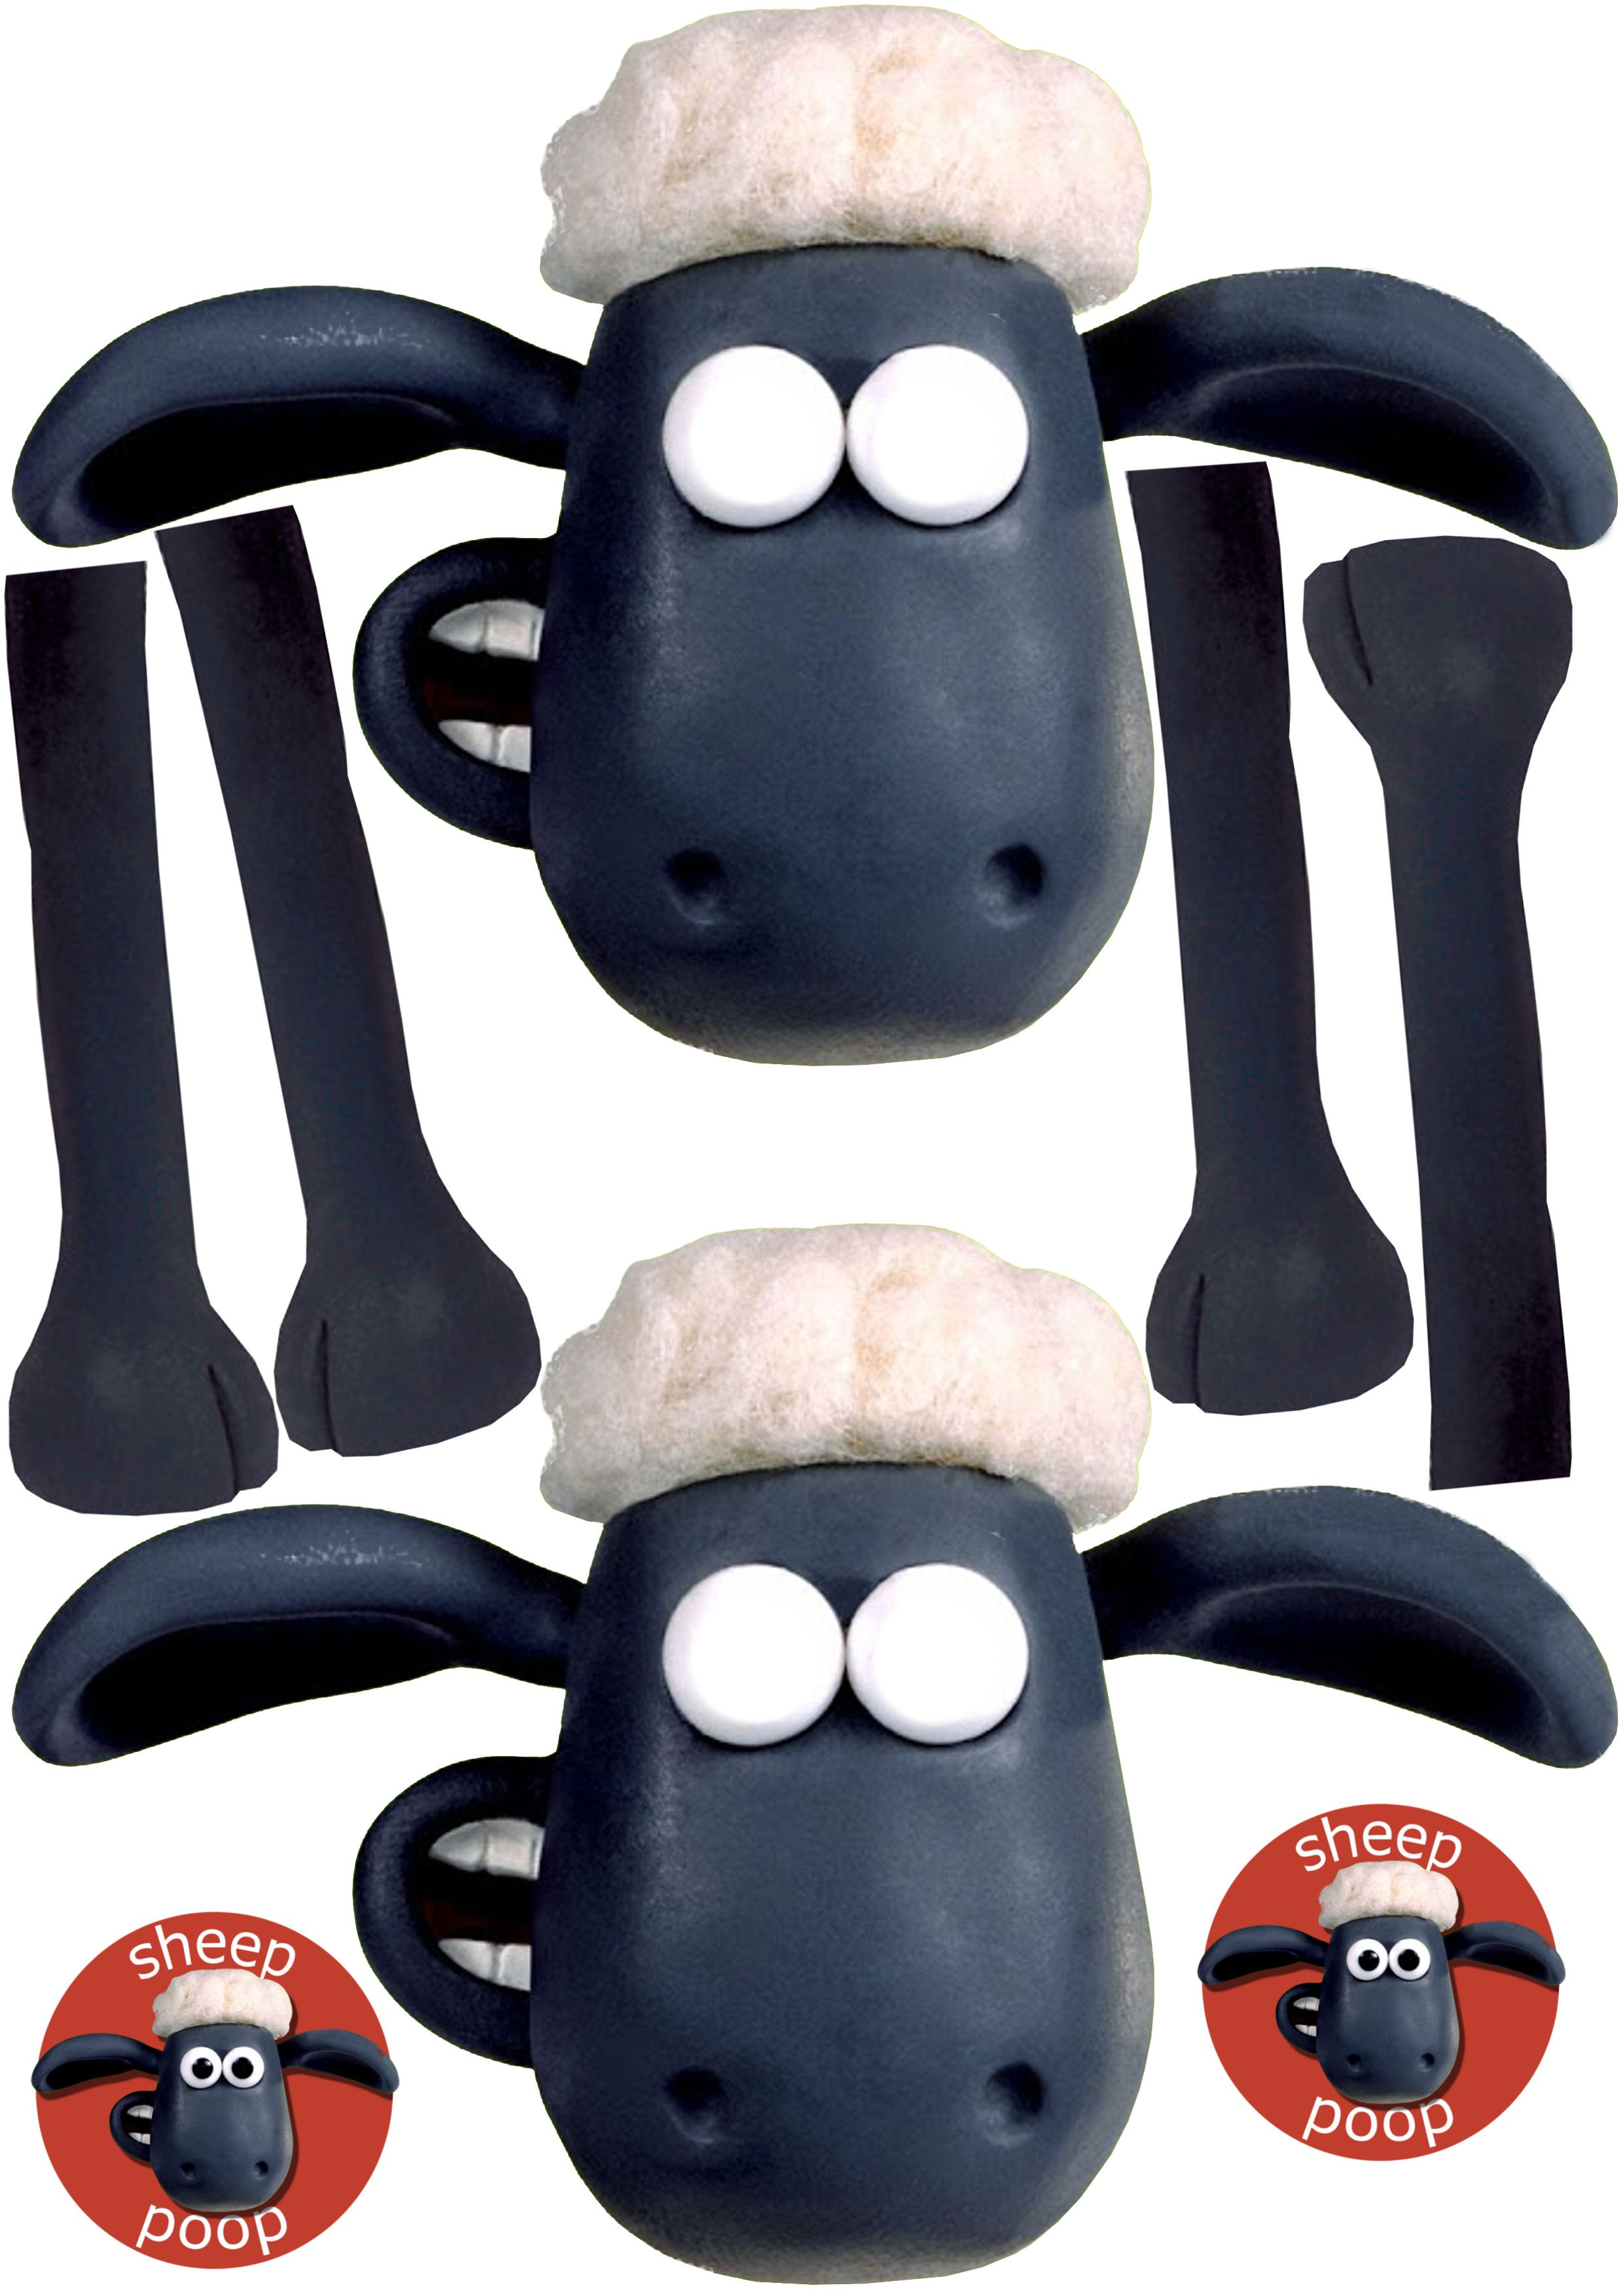 We Had A Shaun The Sheep Party (Including Free Shaun The Sheep Party ...